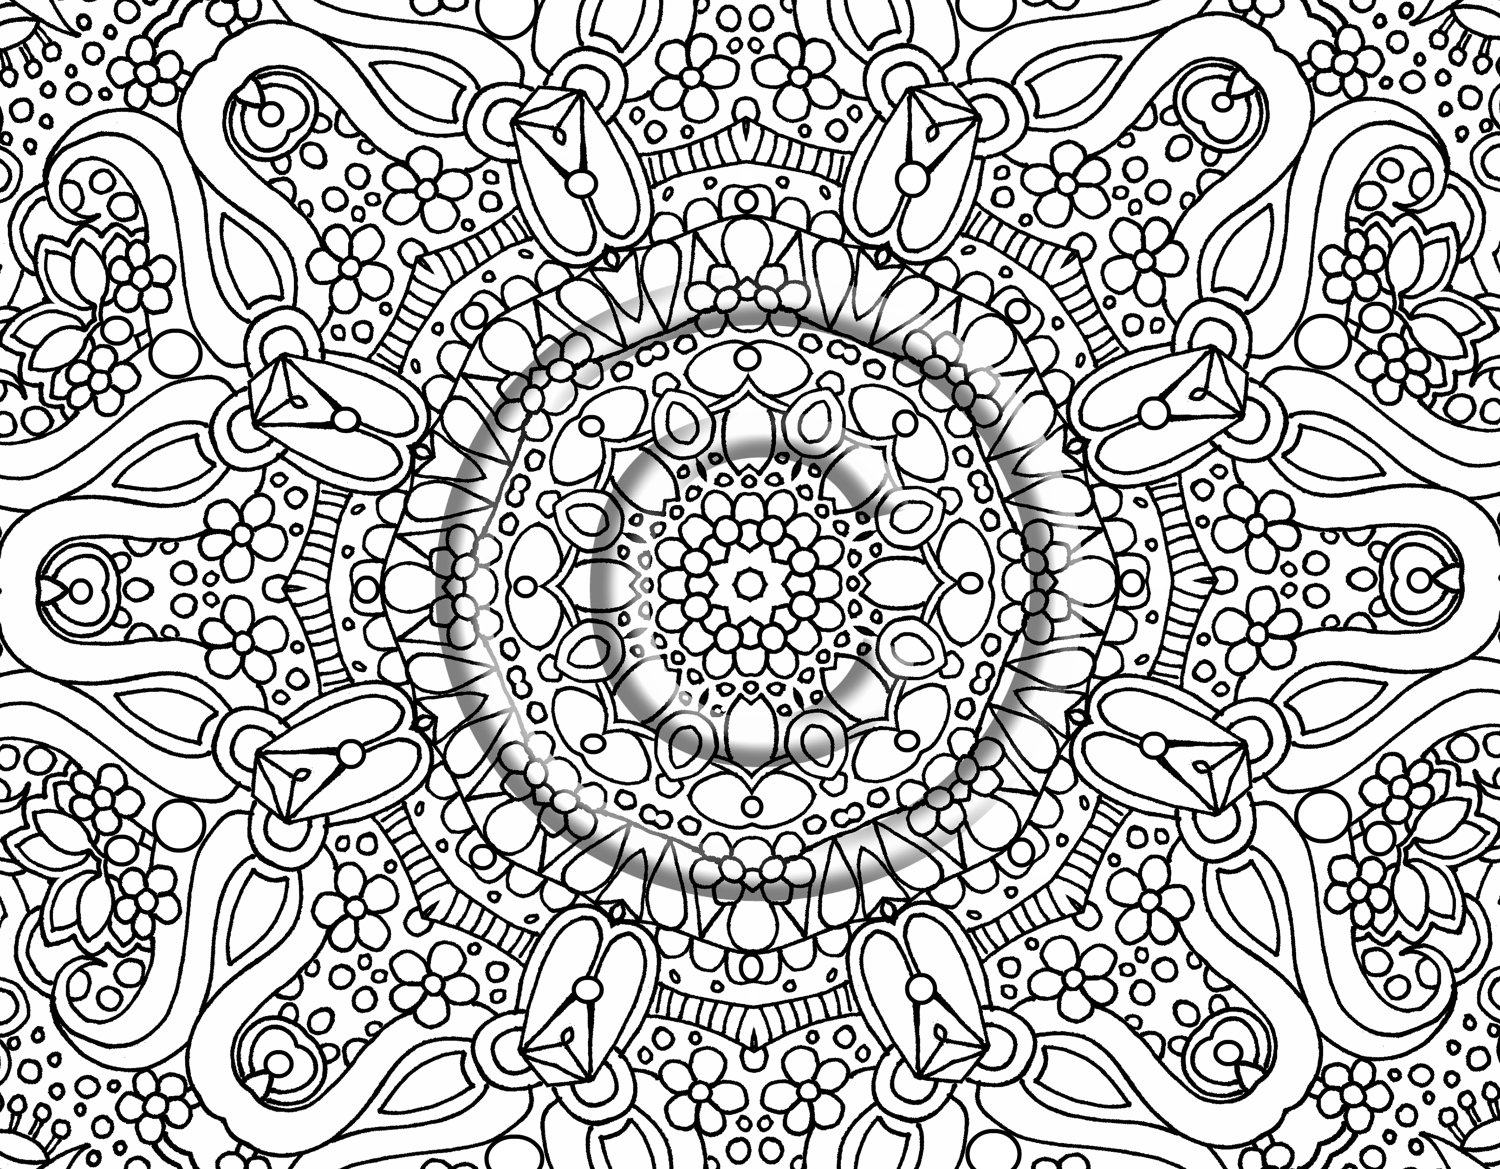 printable detailed coloring pages free detailed coloring pages proudvrlistscom coloring home printable pages coloring detailed